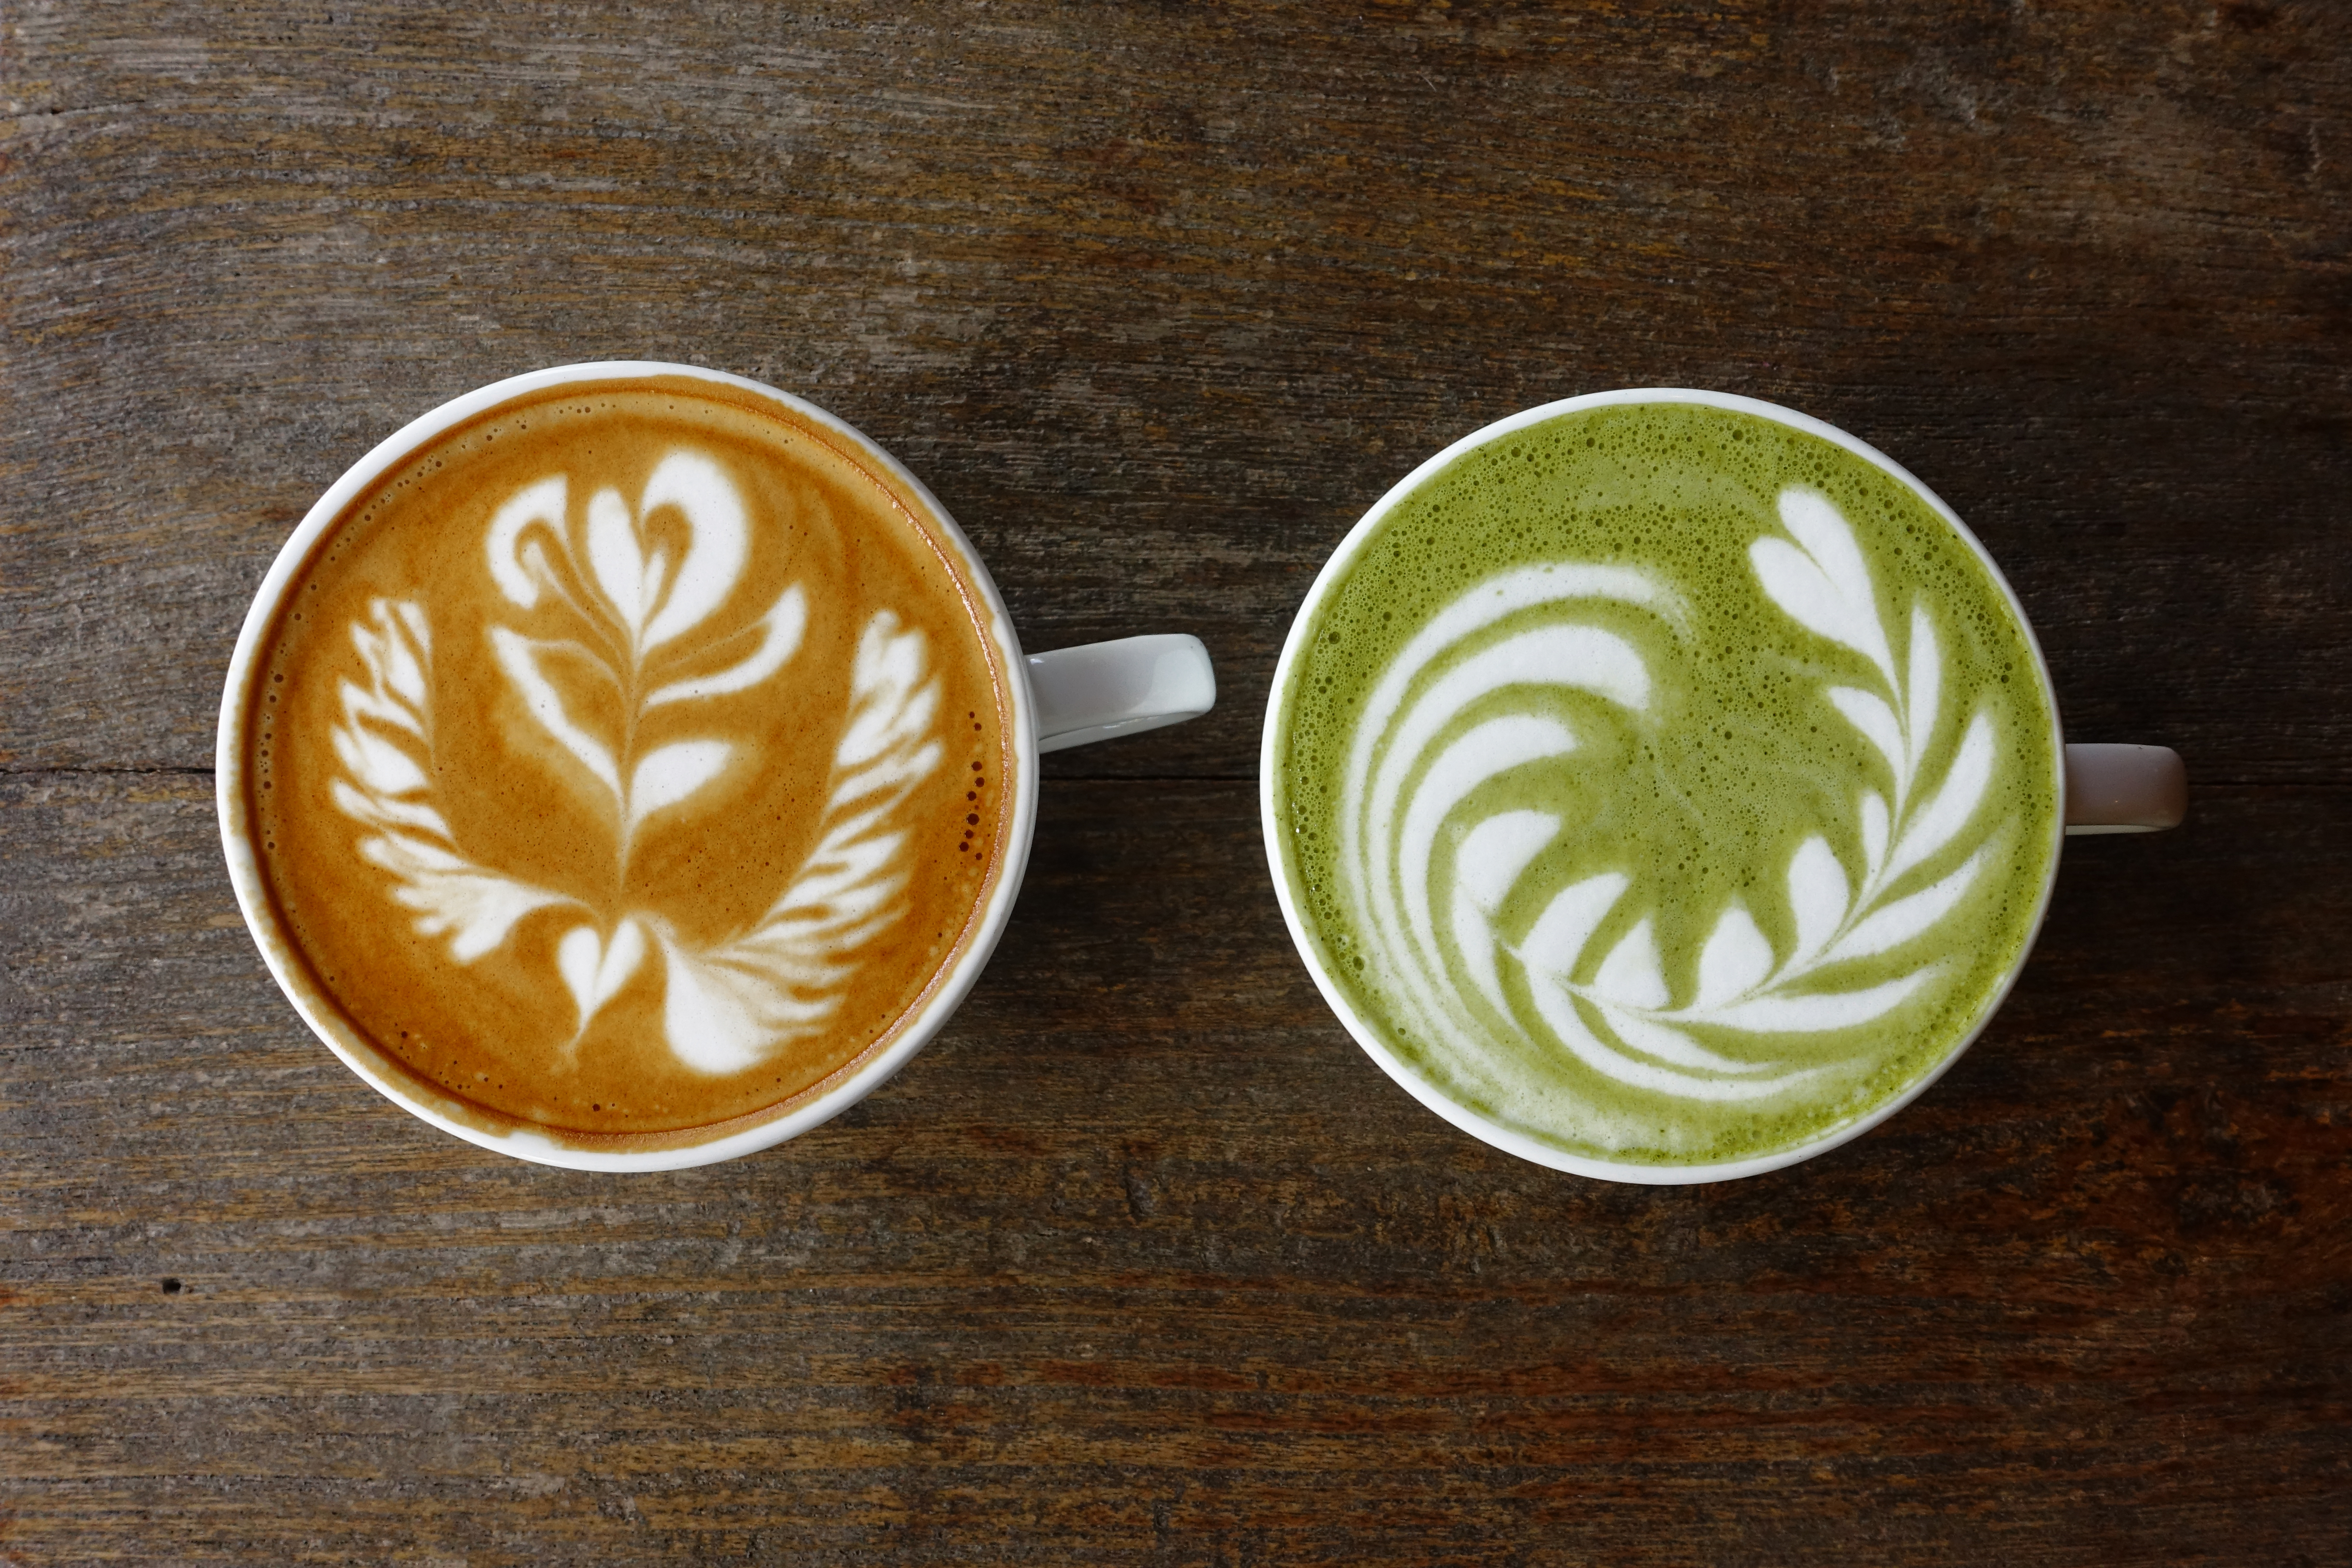 A cup of green tea matcha latte and cup of latte art coffee